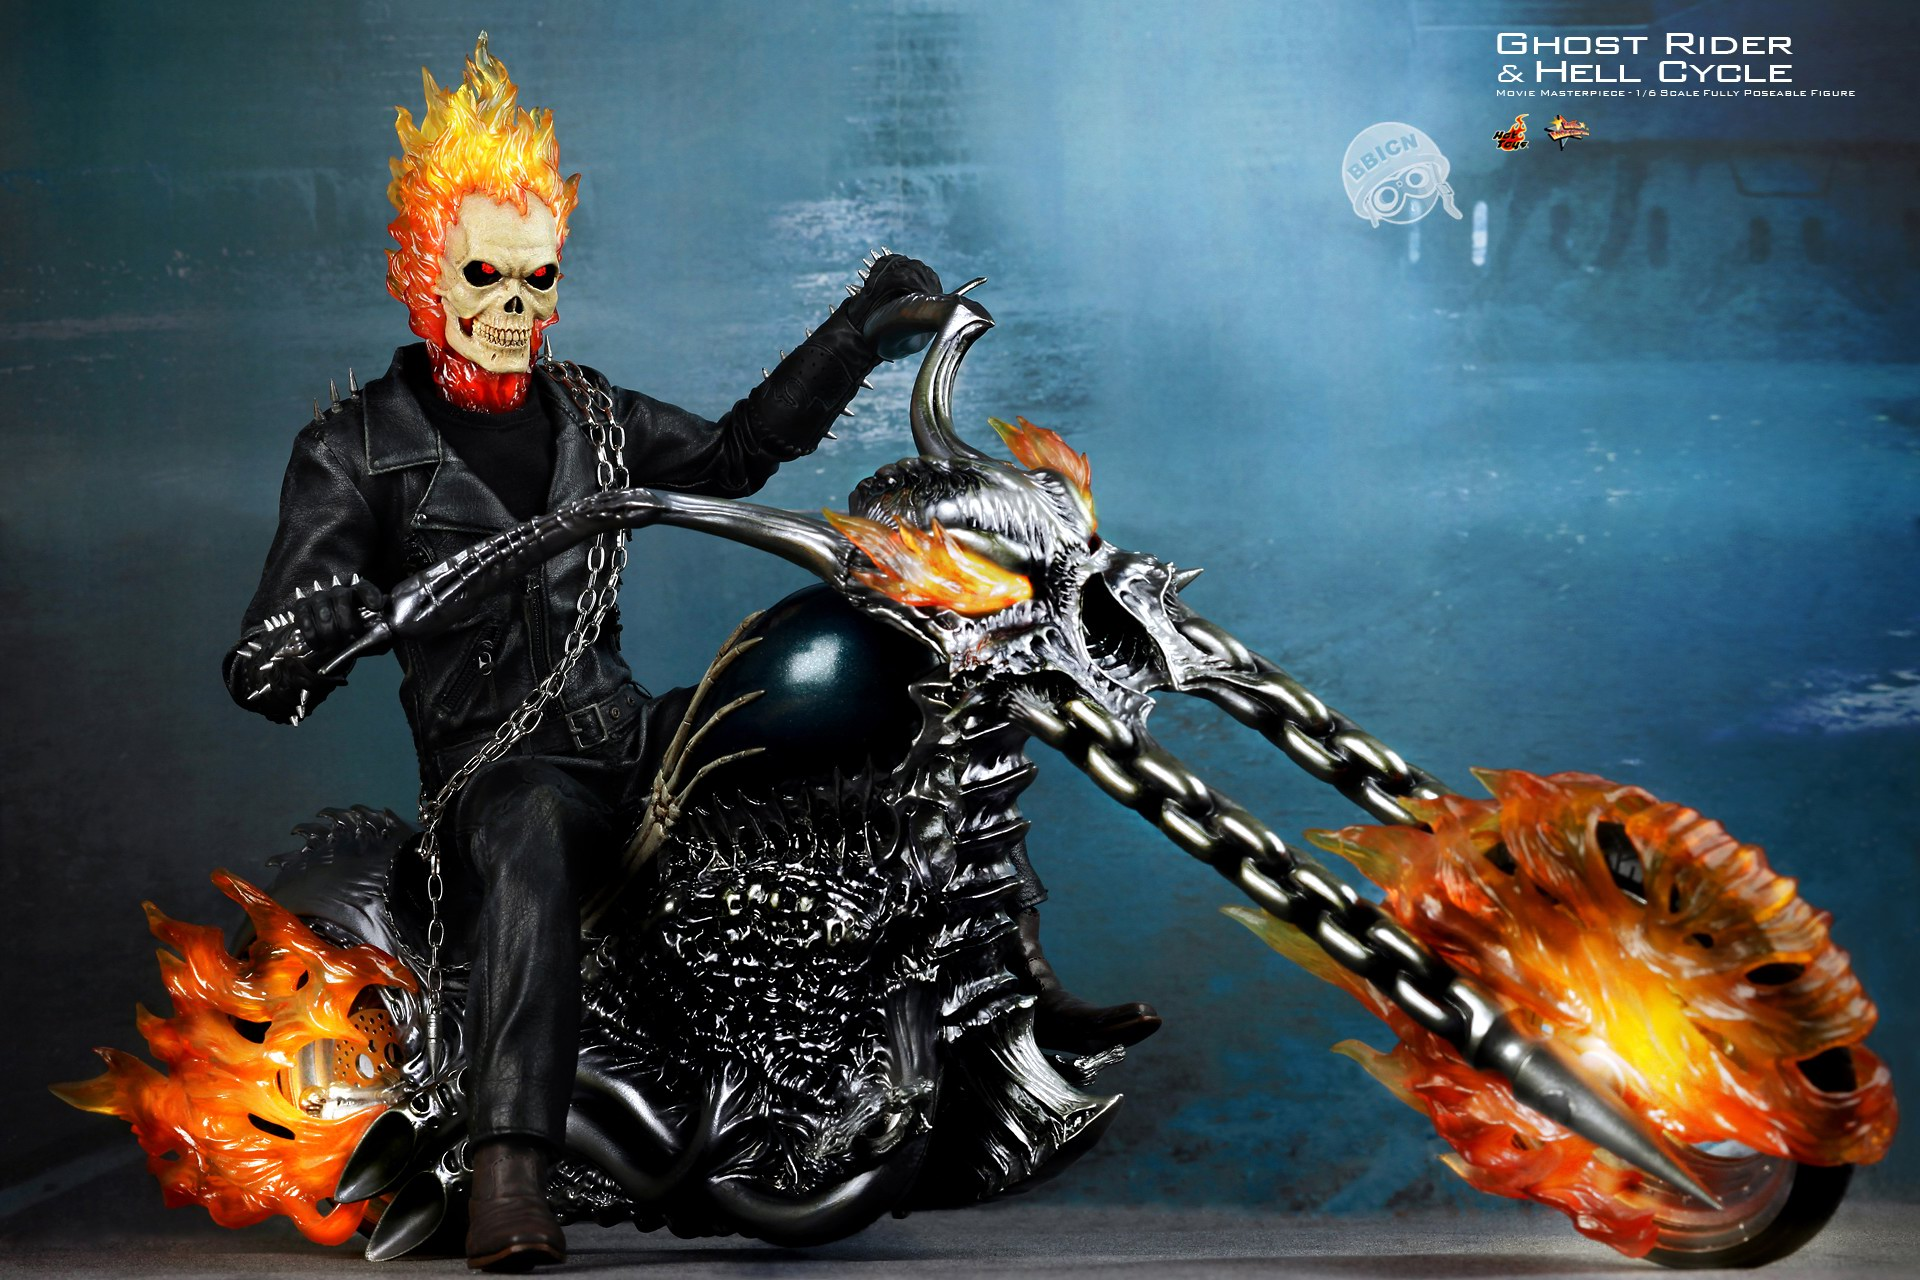 MMS133 Ghost Rider Ghost Rider Limited Figurine with Bike 1920x1280